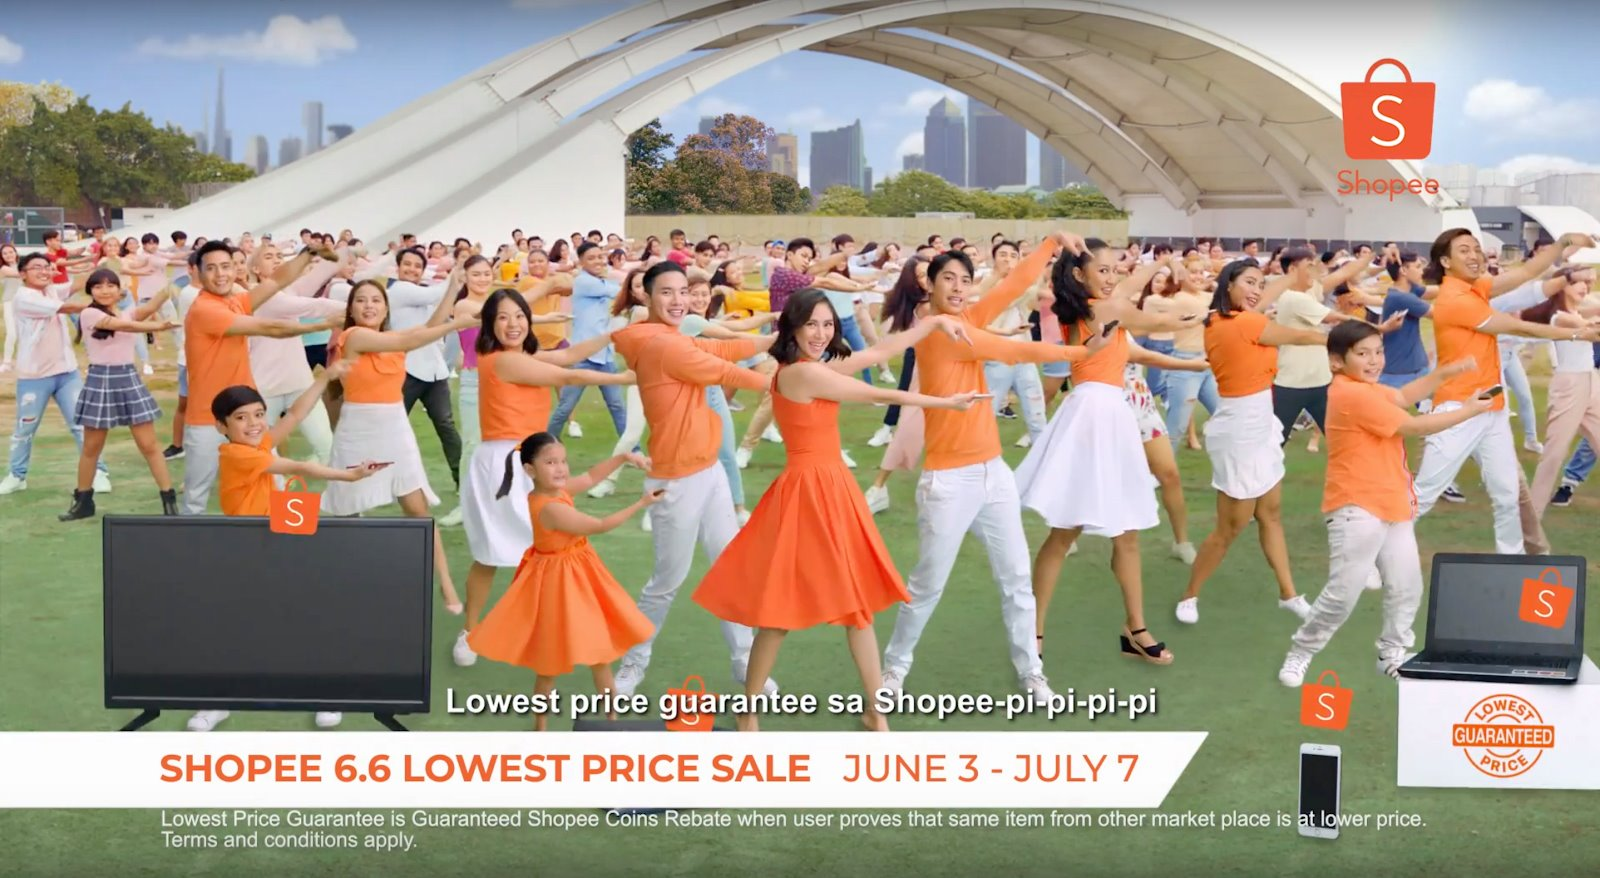 Shopee debuts television commercial with Sarah Geronimo for Shopee 6.6 - 7.7 Lowest Price Sale